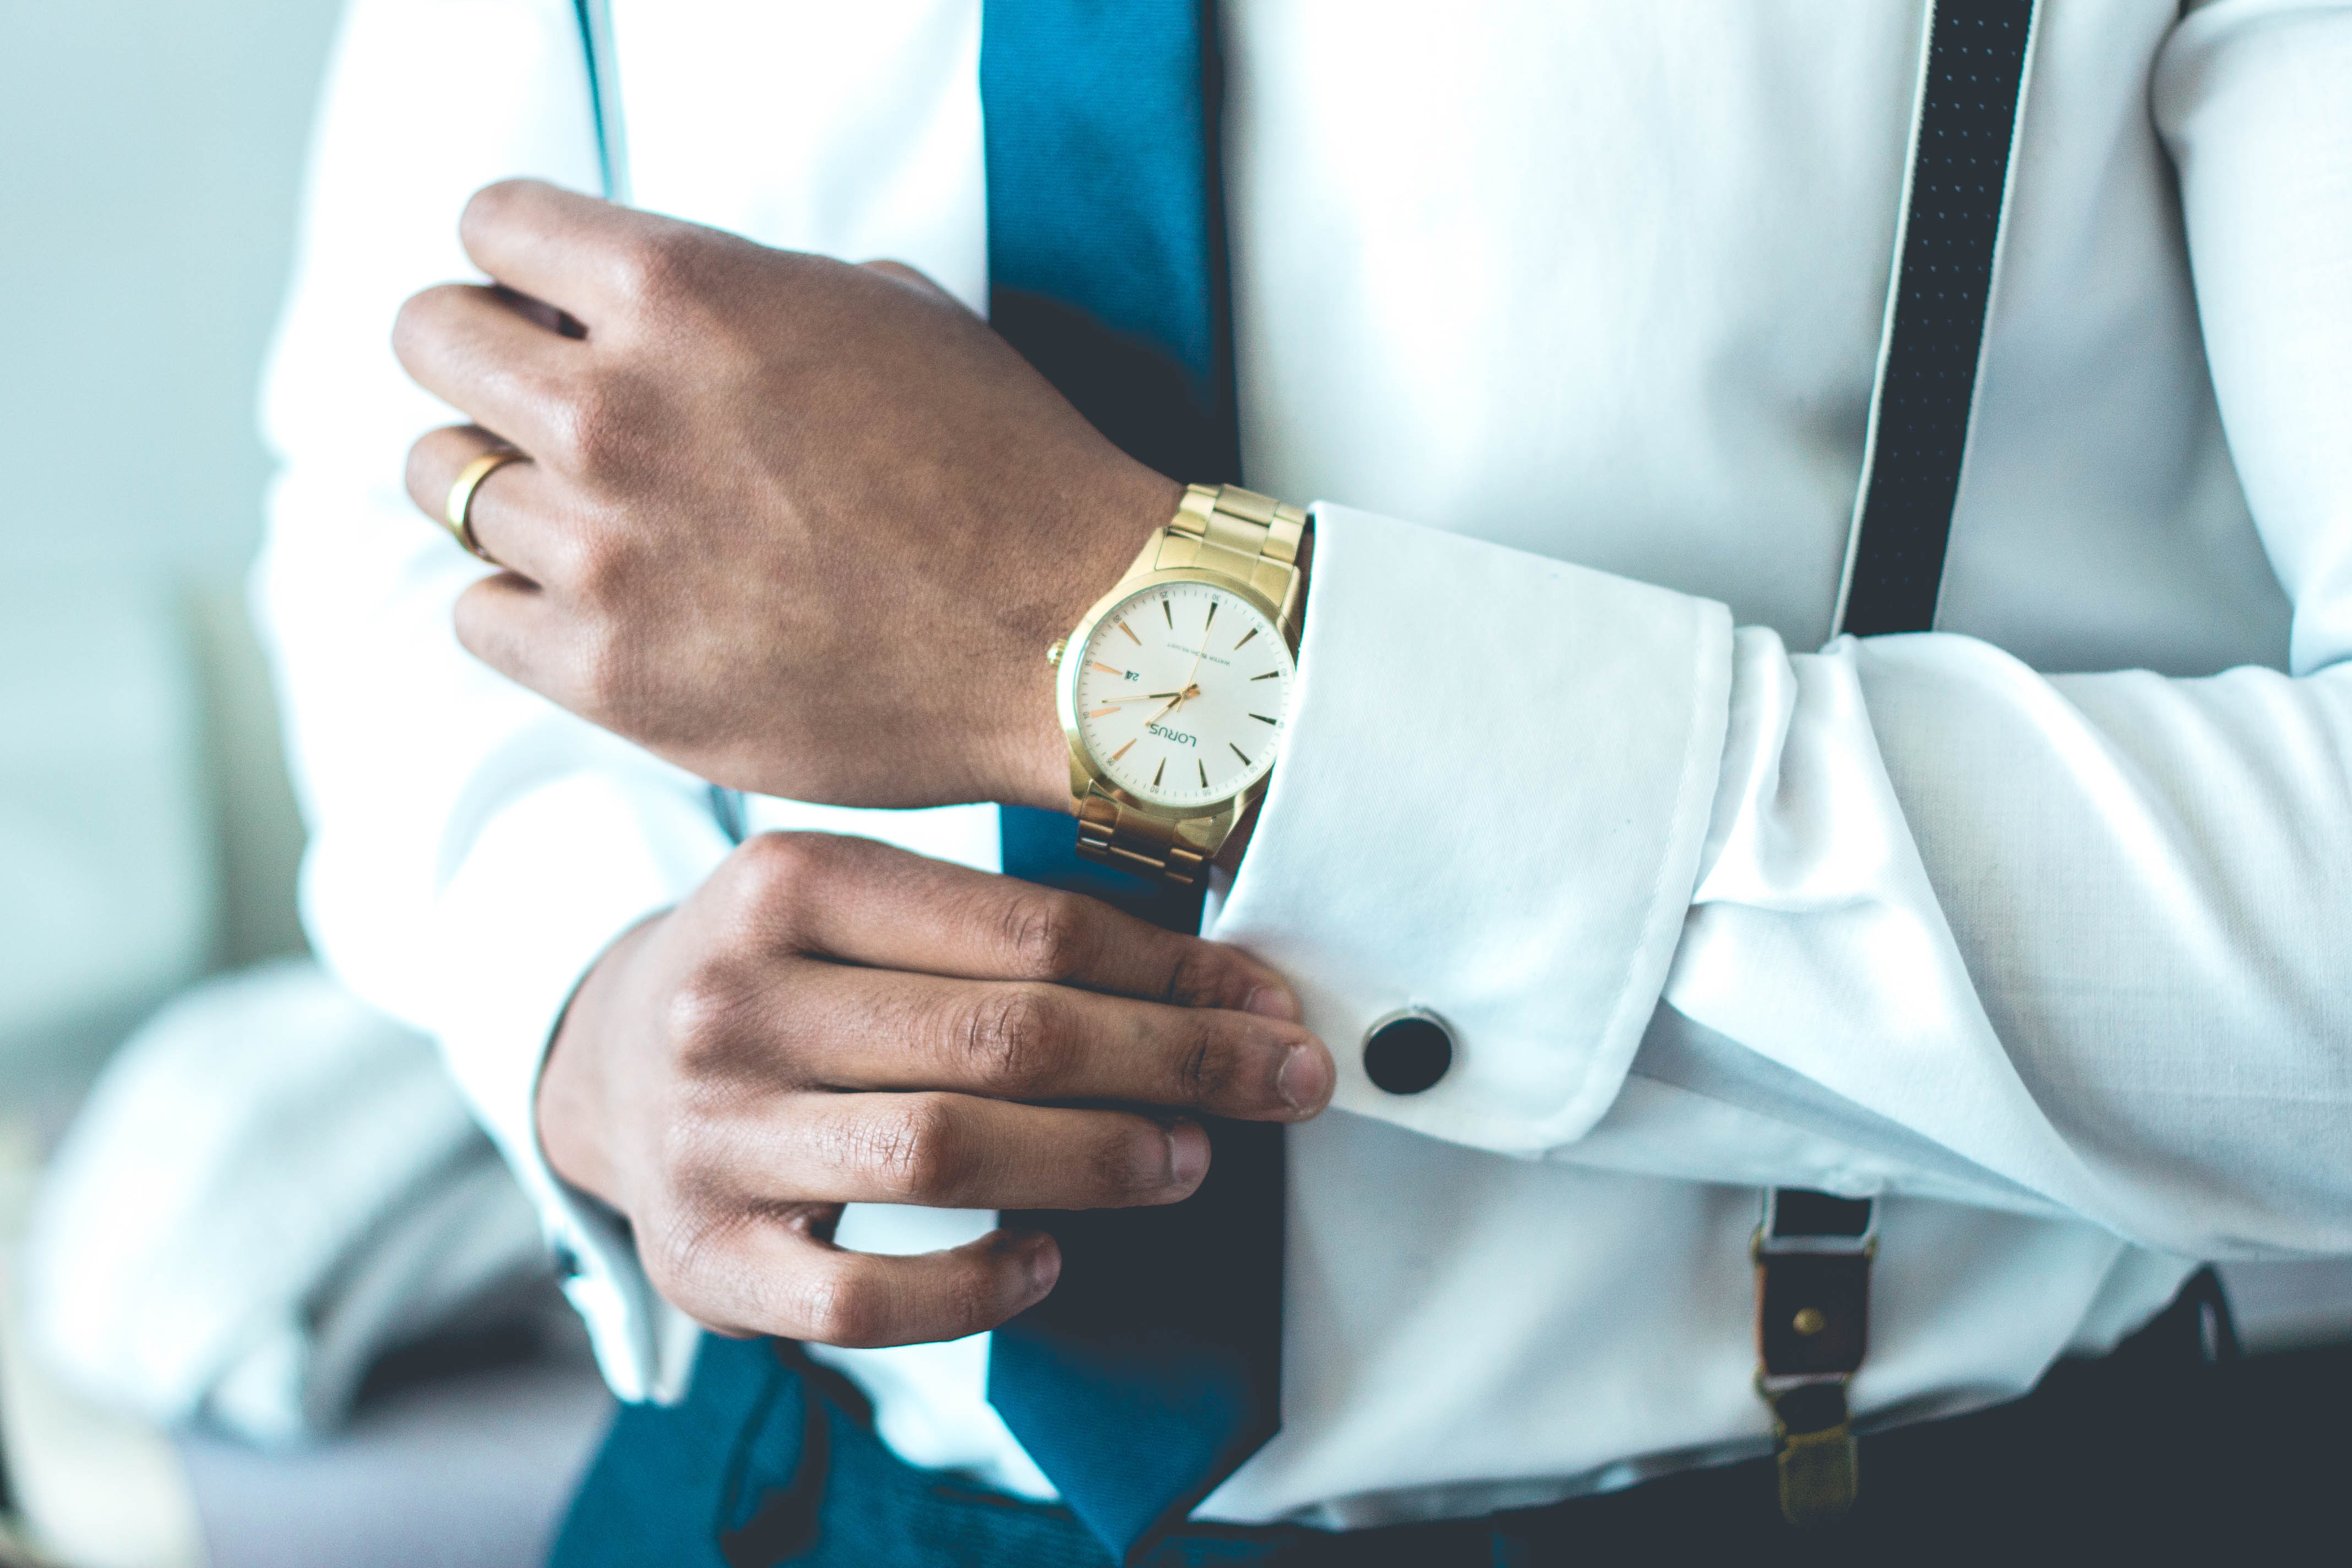 A man in a gold watch adjusting the cuffs of his white shirt